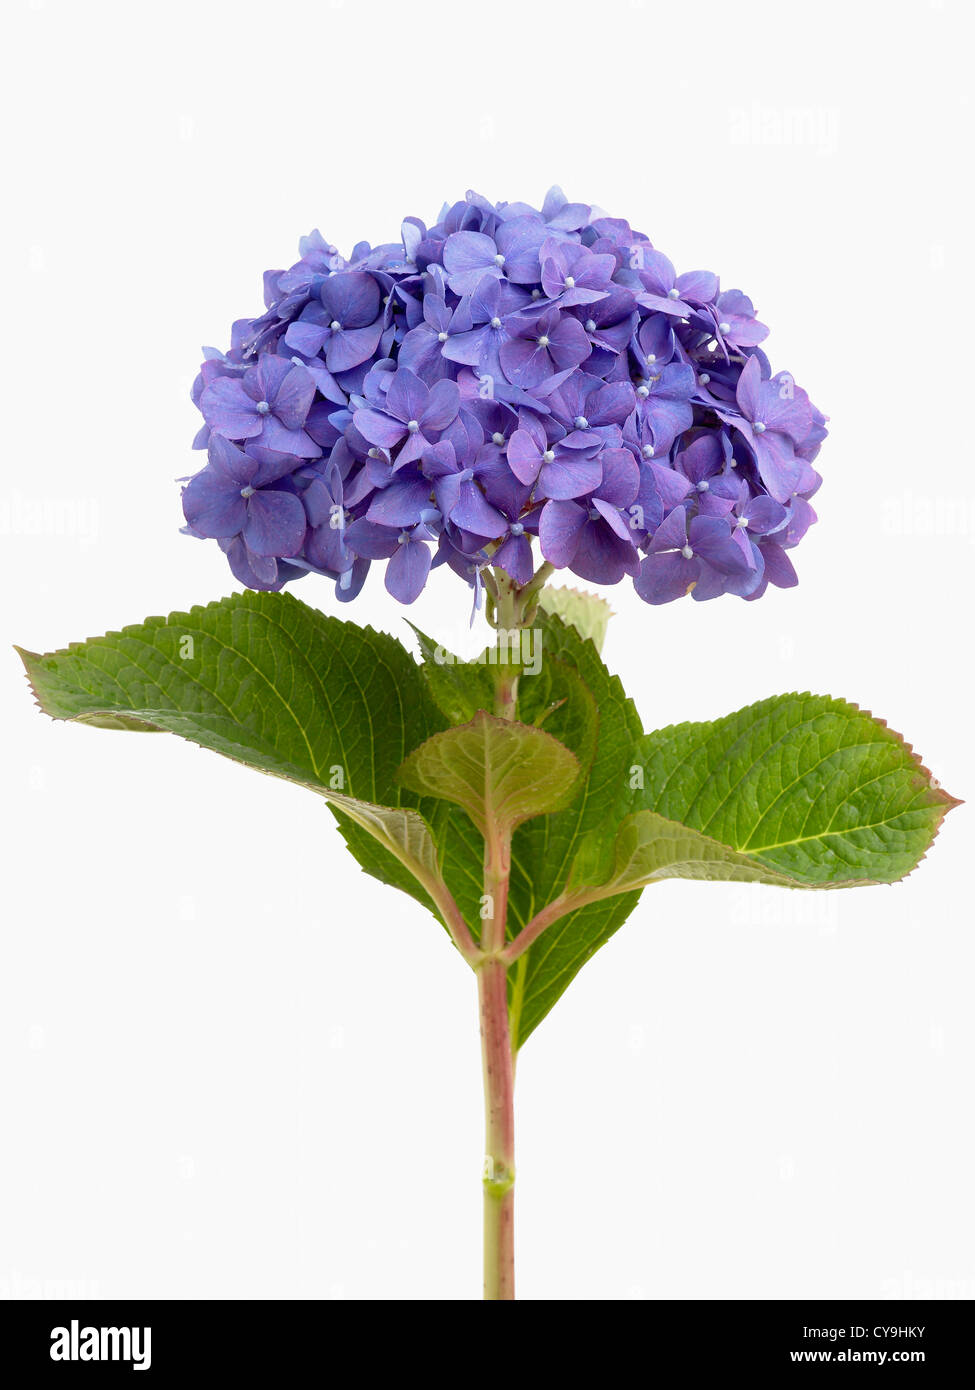 Single blue Lacecap hydrangea, Hydrangea macrophylla 'Diamond Blue', on a leafy stem against a white background - Stock Image